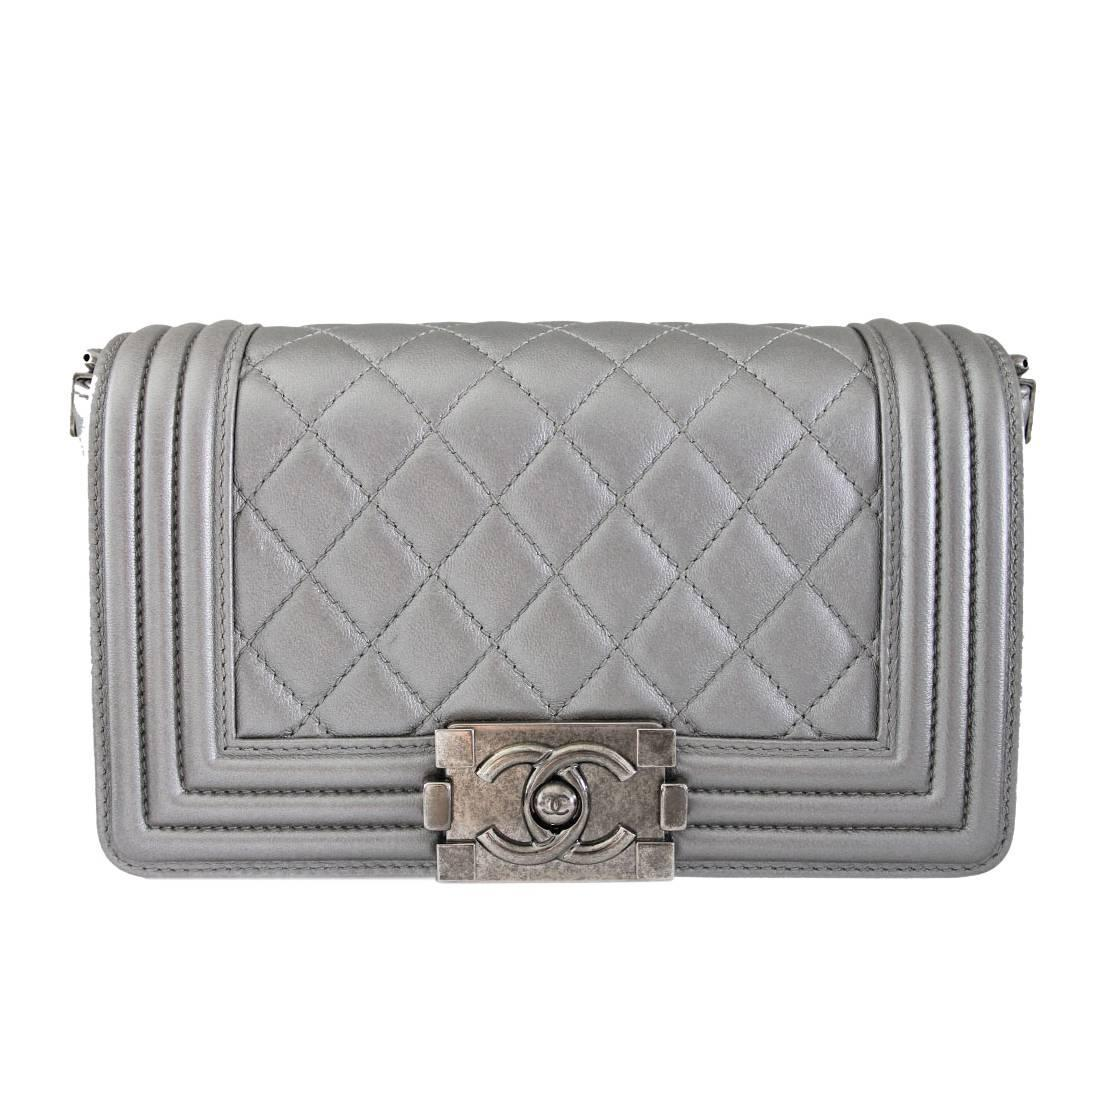 Chanel Silver Boy Bag Quilted Leather Stingray Strap Shw Flap At 1stdibs